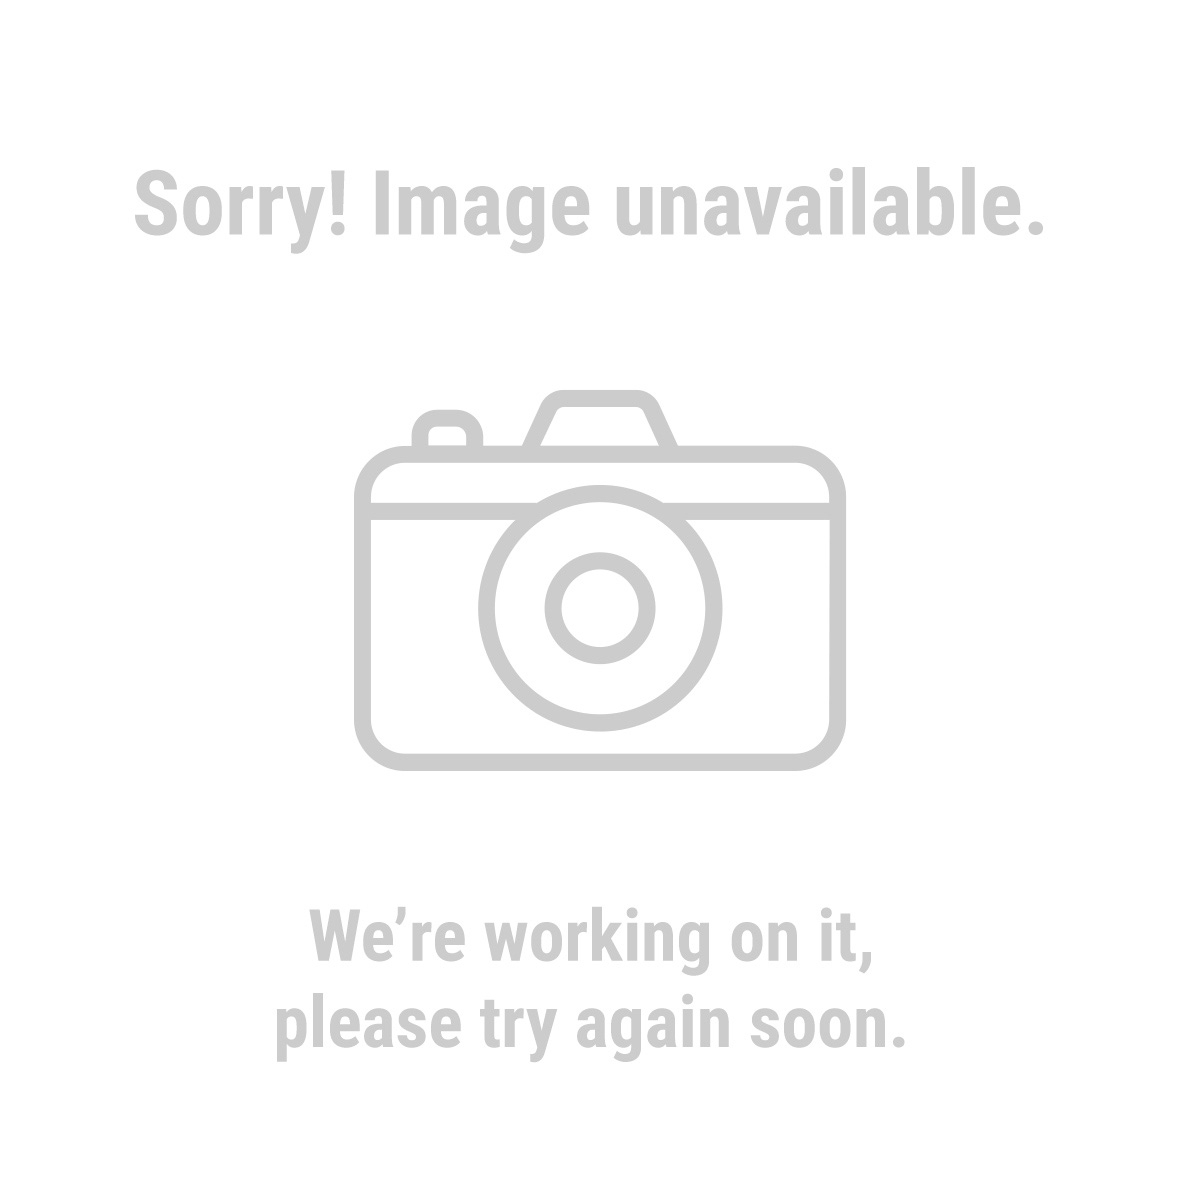 Haul Master Automotive 95974 LED Trailer Light Kit